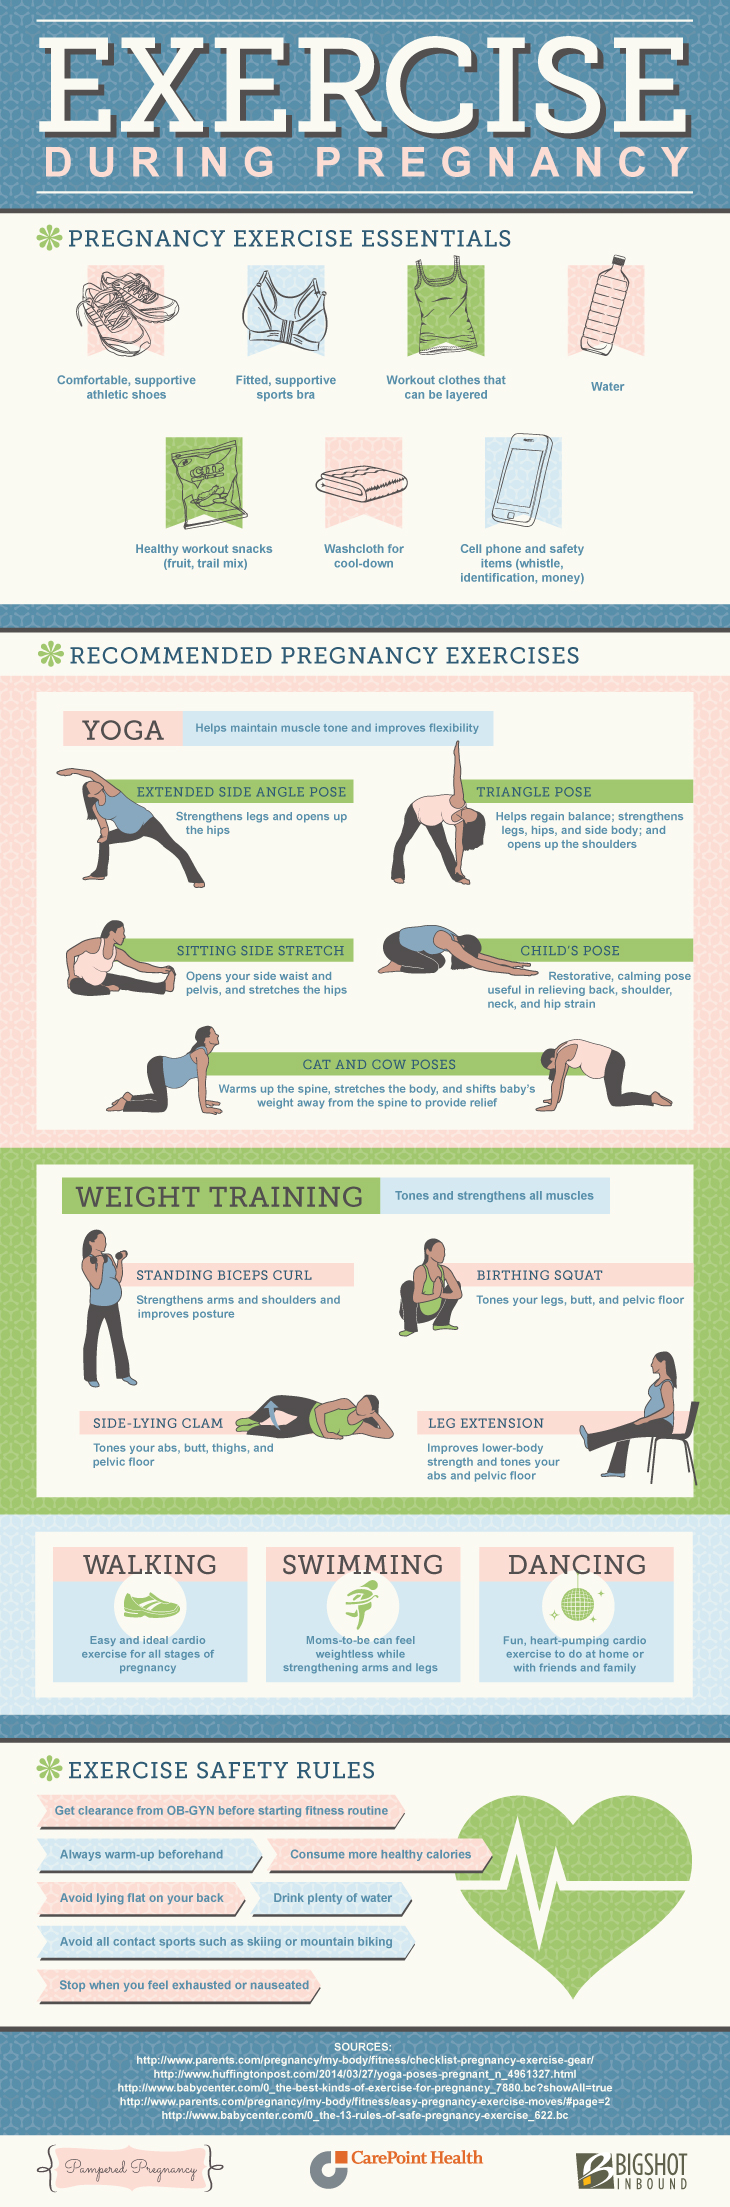 Exercise during pregnancy #infographic